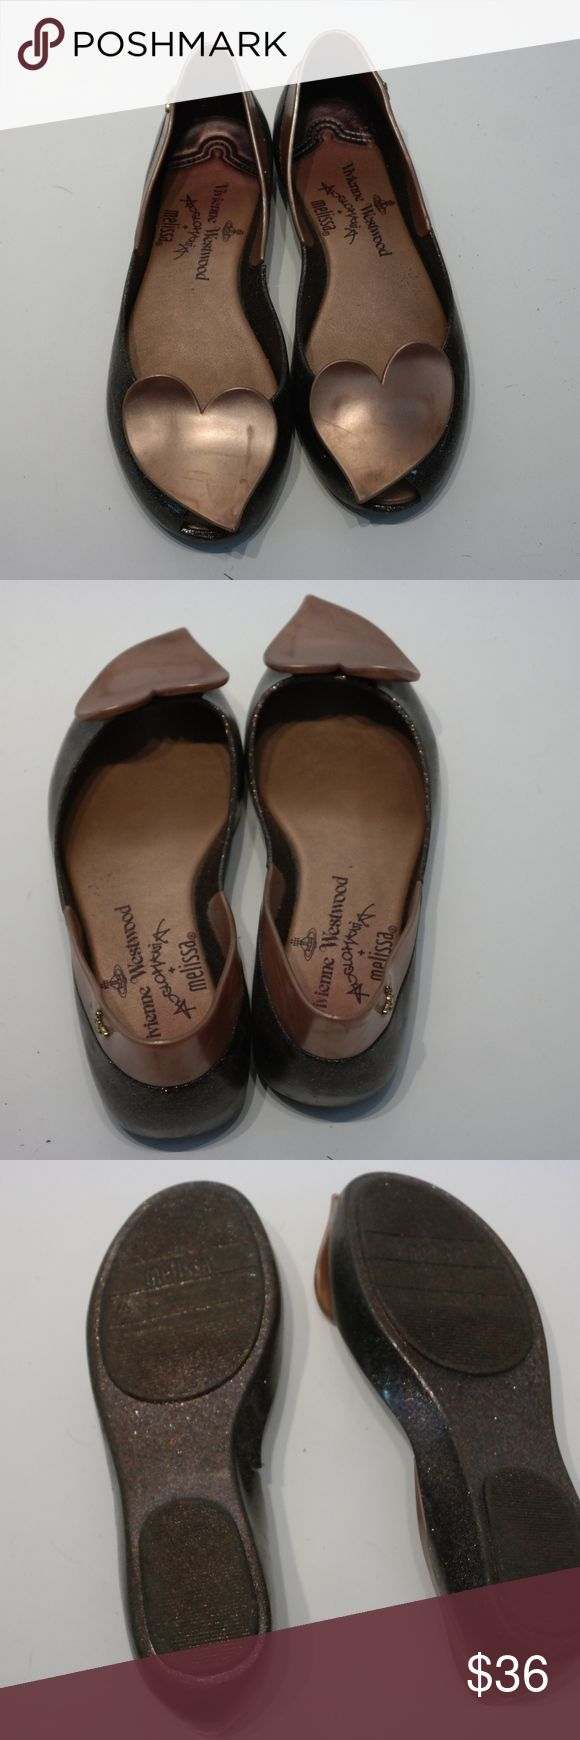 Melissa Vivienne Westwood Heart Glitter Flats Scratches. Has a tear on the side of one of the shoes. Vivienne Westwood Shoes Flats & Loafers